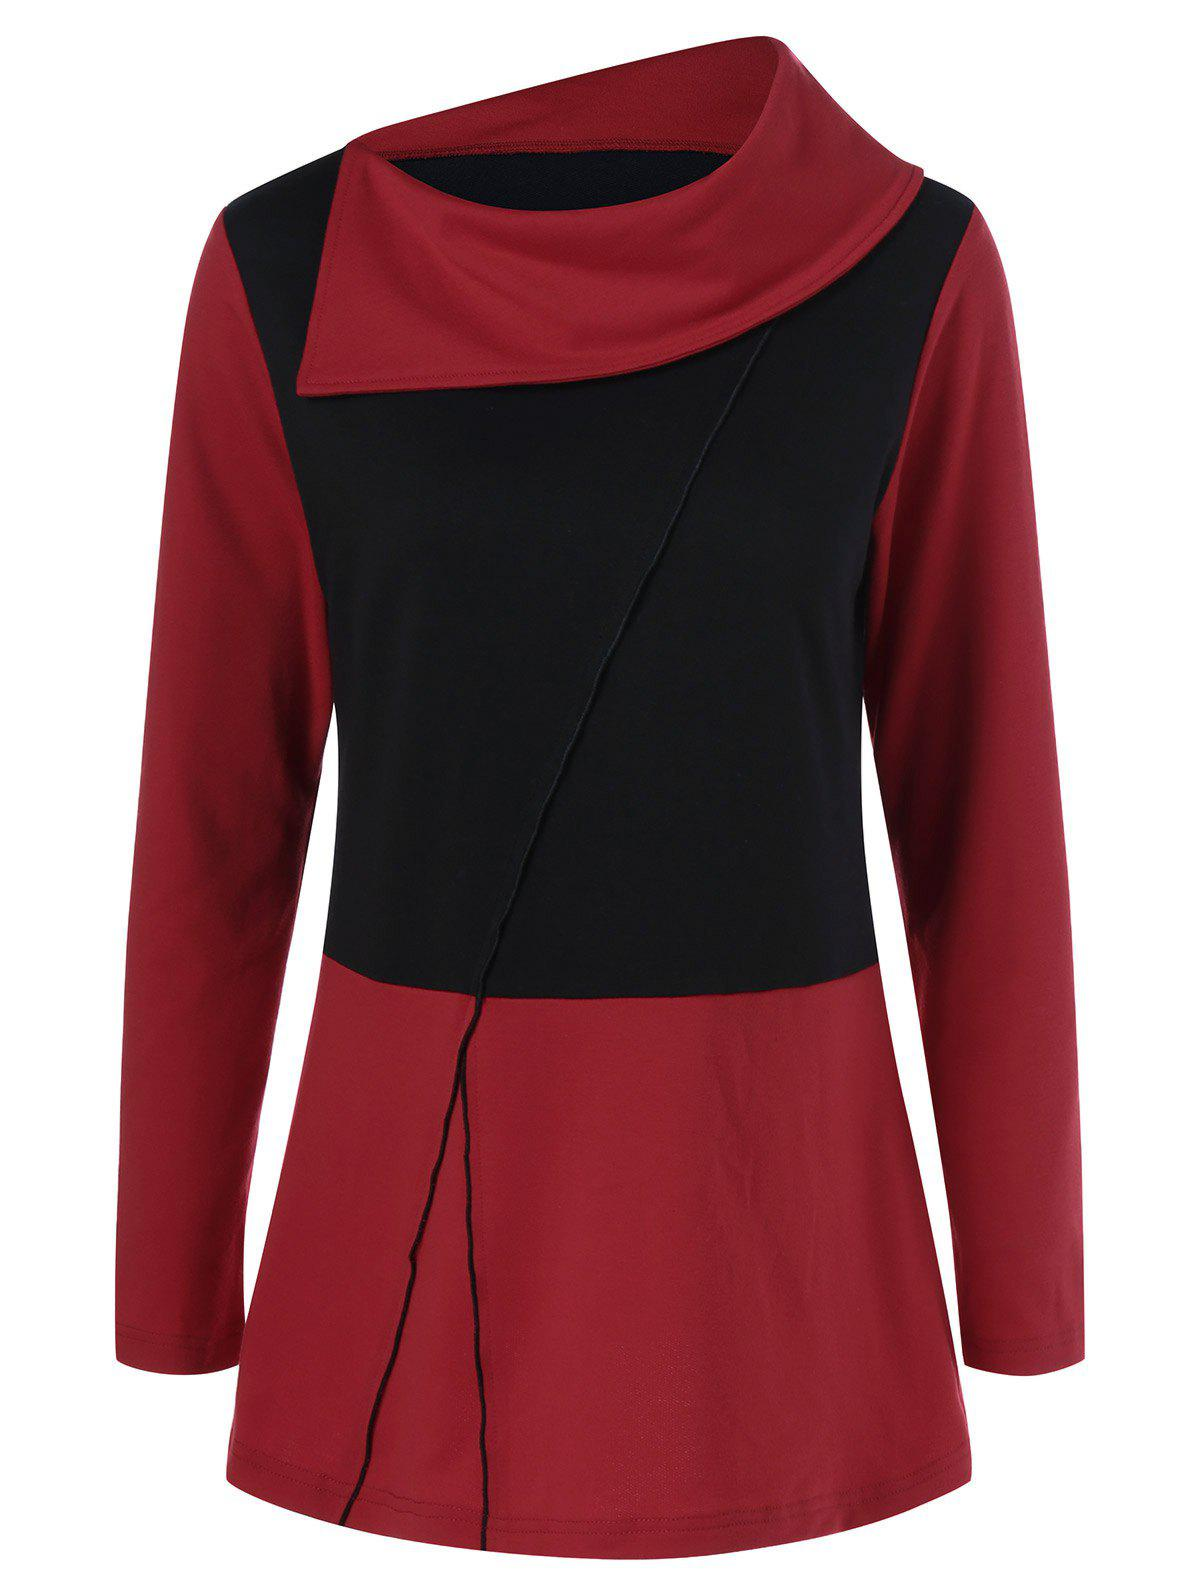 Side Collar T-ShirtWomen<br><br><br>Size: XL<br>Color: RED WITH BLACK